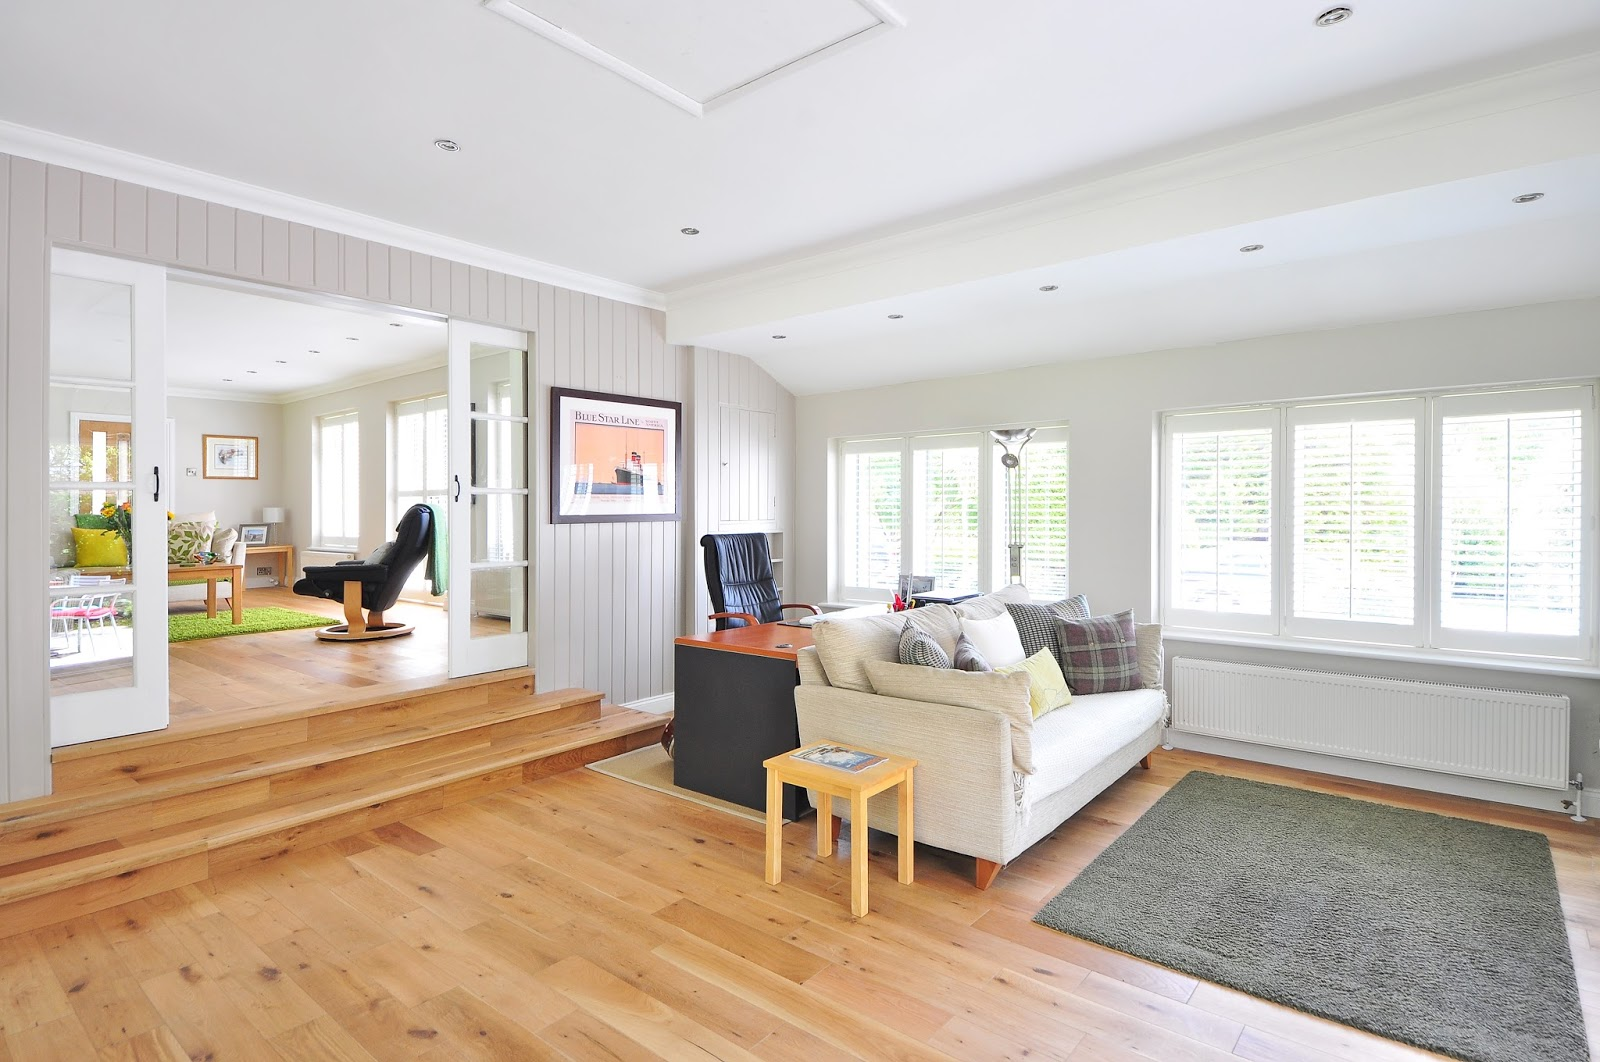 Looking To Learn How To Buy Hardwood Floor For Your Home? Below Are Some  Tips To Help You Make An Educated Decision.